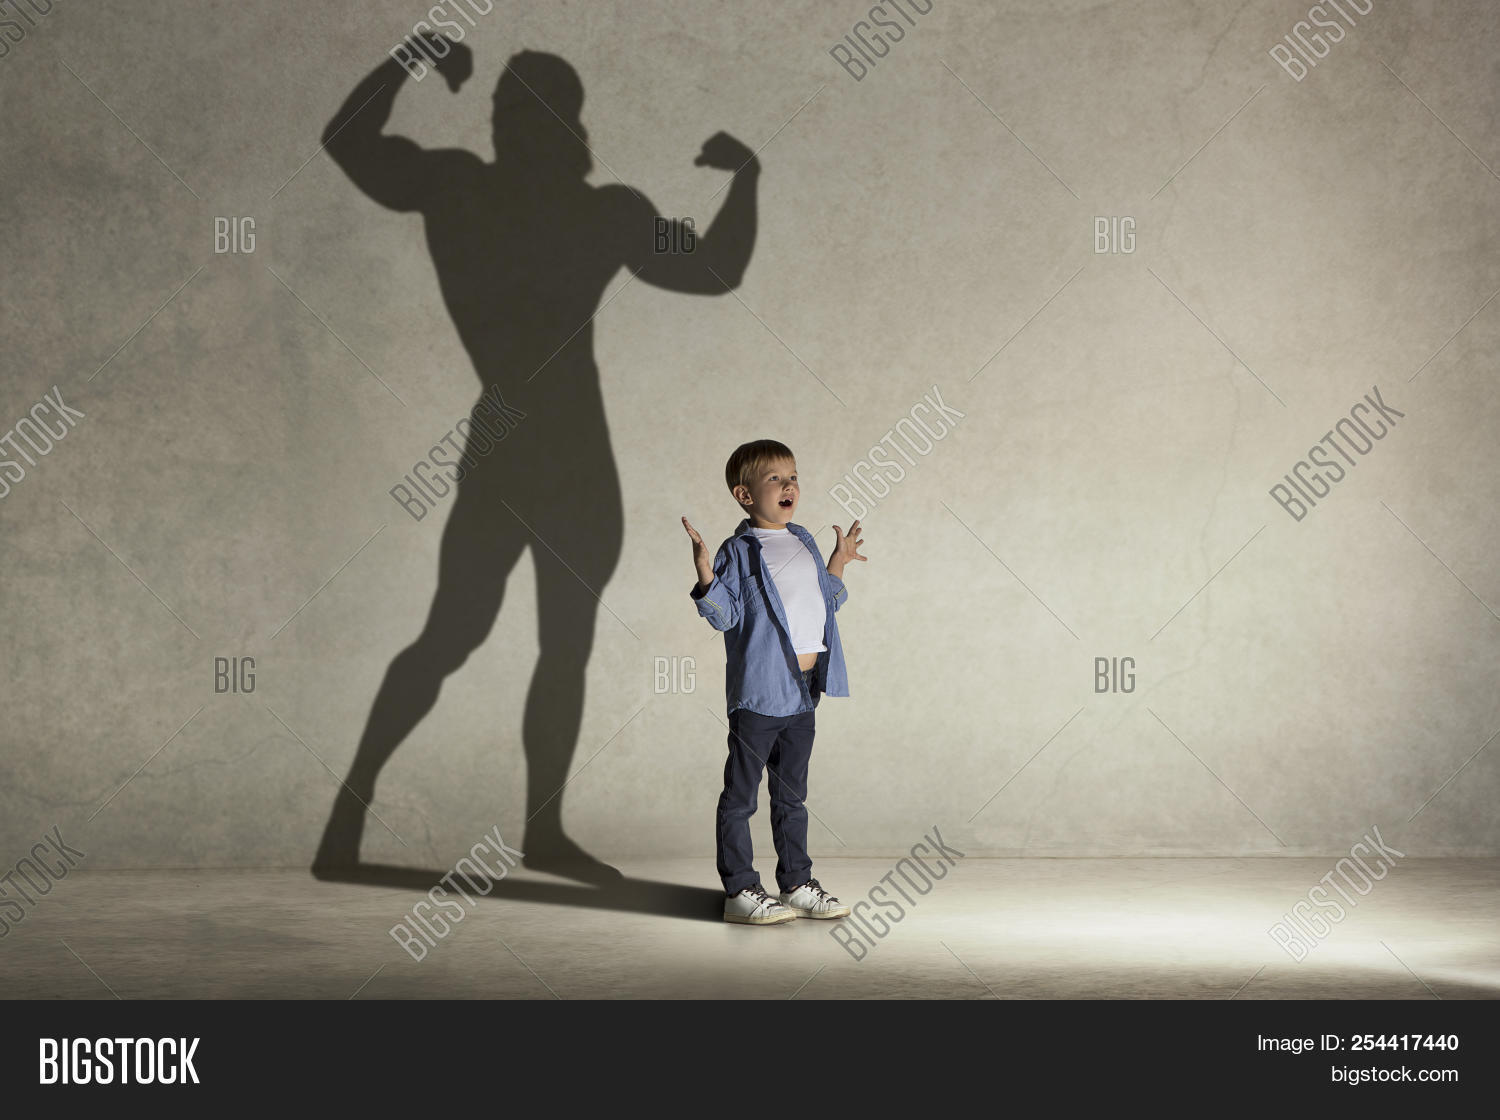 Conceptual,athlete,athletic,baby,become,bodybuilder,boy,champ,child,childhood,concept,creativity,doodles,dream,dreaming,equipment,famous,fantasy,fast,figure,fit,foot,full,fun,game,hero,high,idea,imagination,innocent,kid,lifestyle,light,little,male,muscles,people,performance,person,player,room,school,shadow,sport,studio,success,super,wall,young,youth